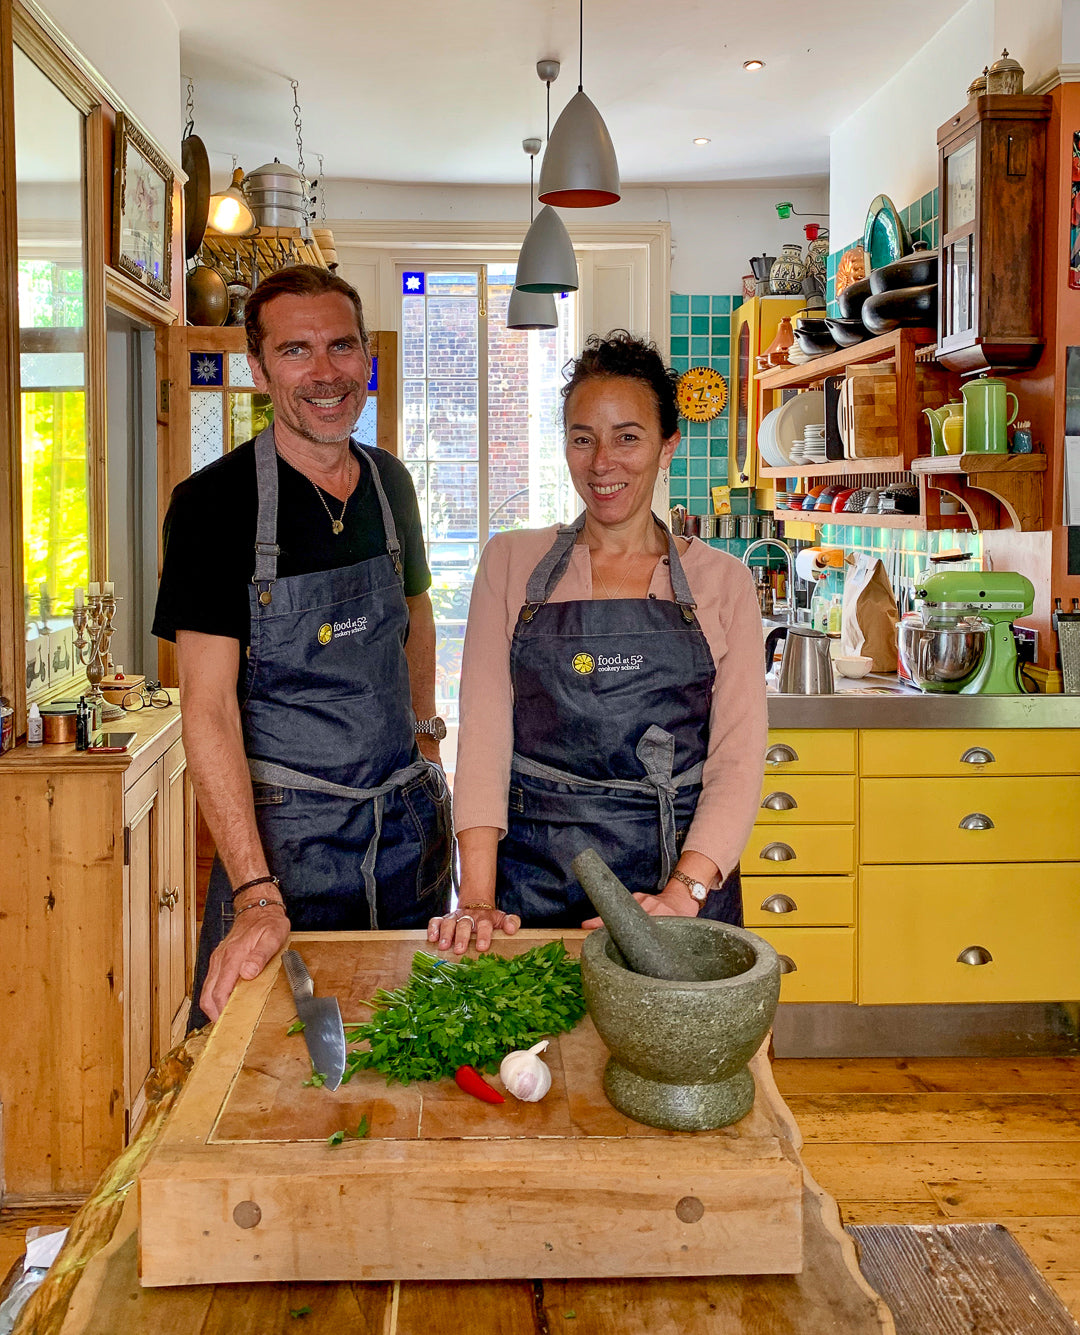 Founders John and Emily in their Food at 52 signature denim aprons teaching the first online cooking class.